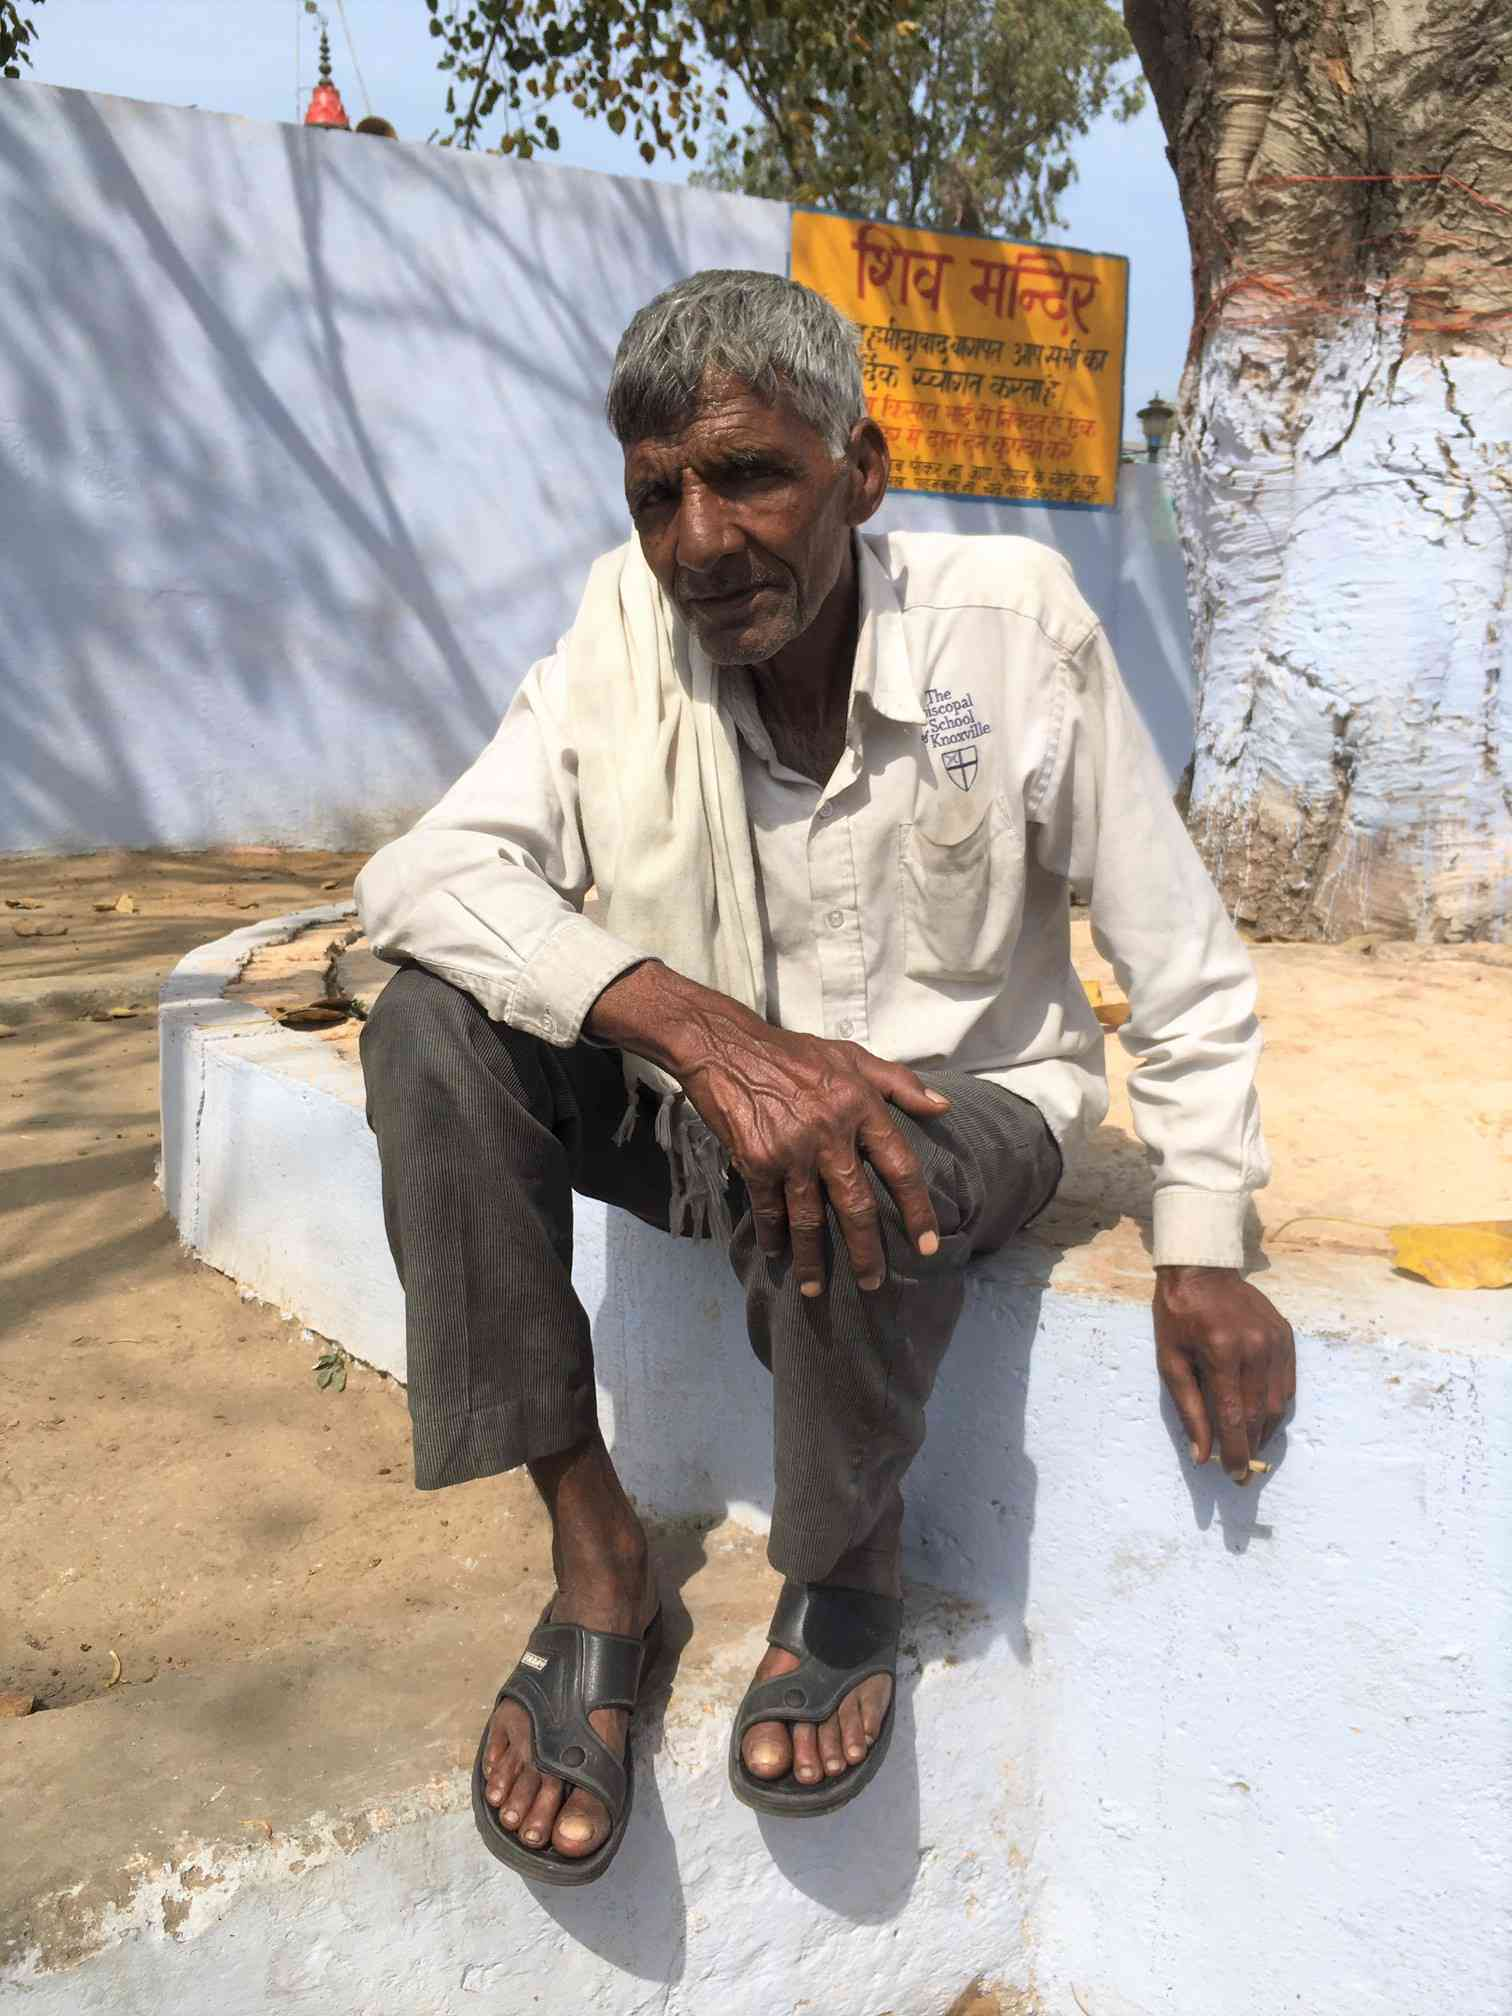 Shyam Singh at his home in Naya Gaon, Baghpat. Photo credit: Akash Bisht